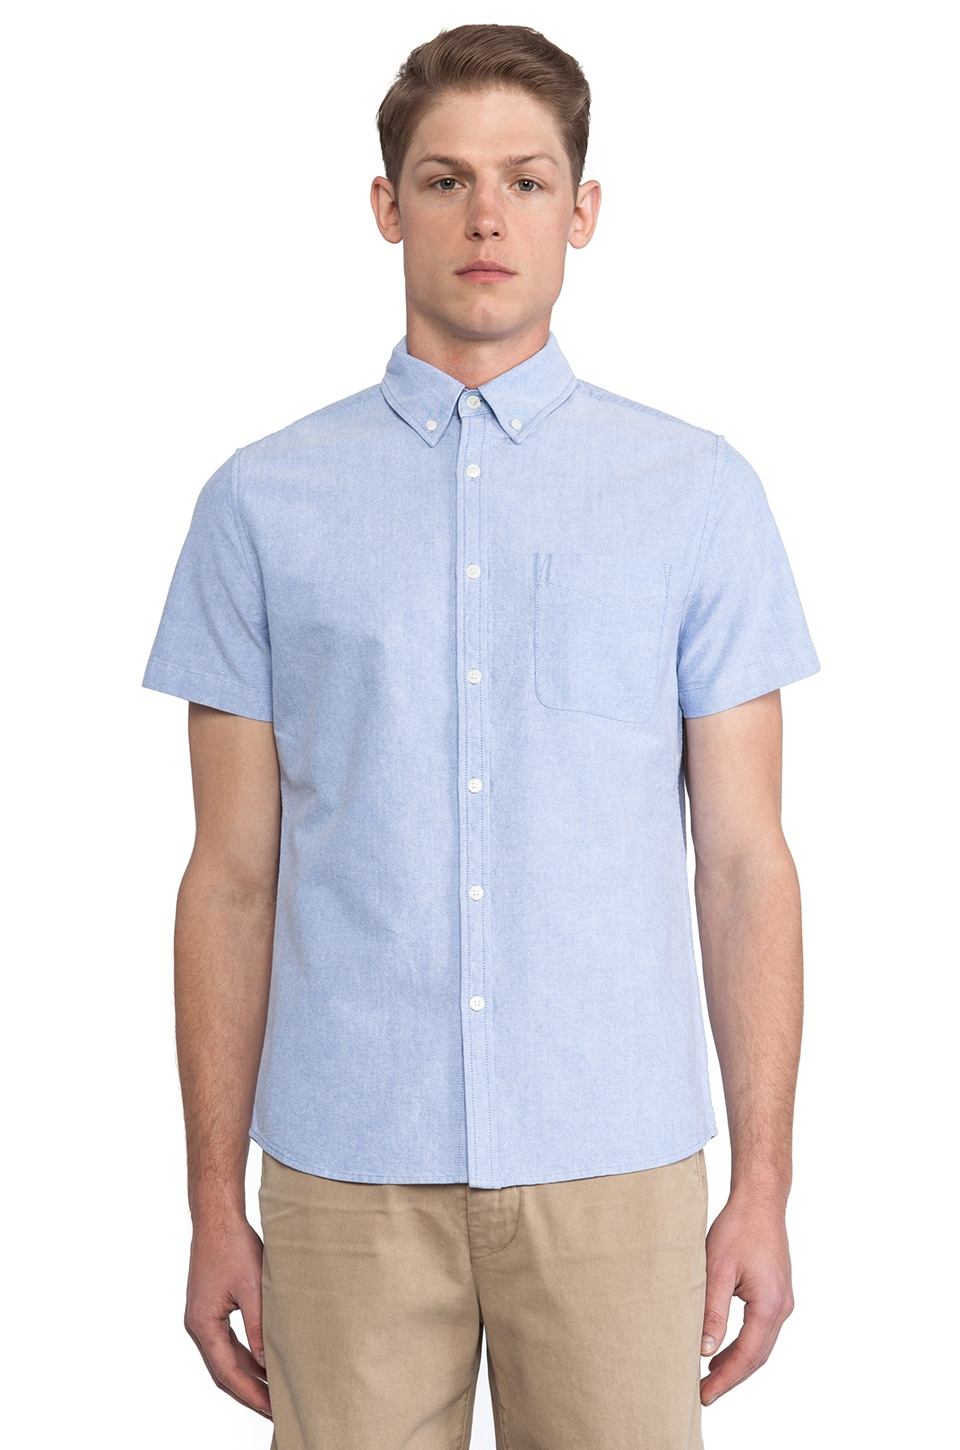 AG Adriano Goldschmied Aviator Shirt in Oxford Blue